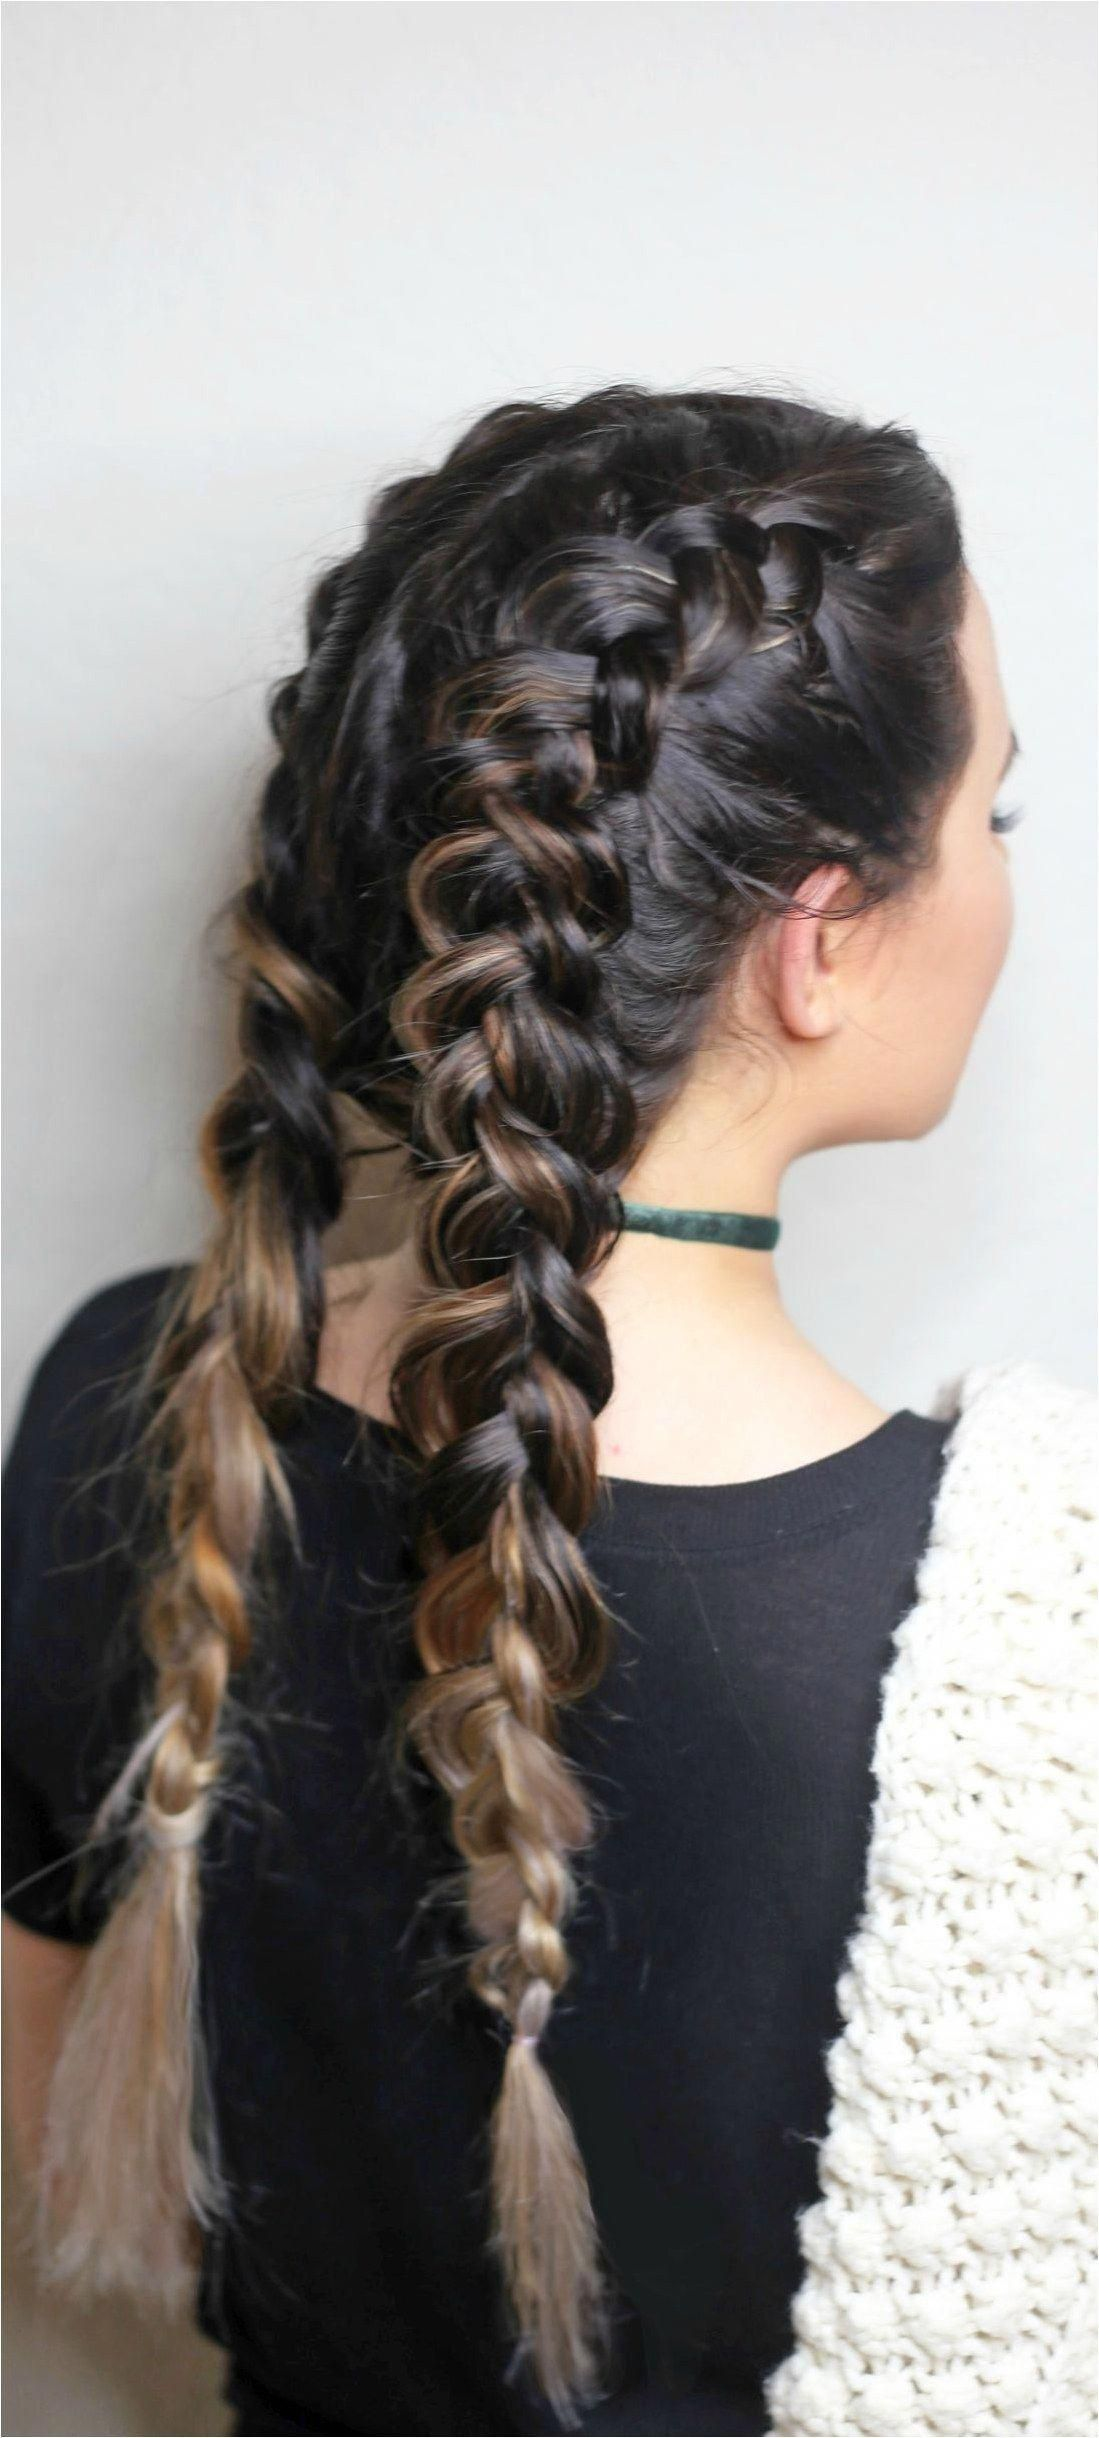 "The most gorgeous french braid pigtails! Click here for full step-by-step hair tutorial! <a class=""pintag"" href=""/explore/EasyHairBraidingTutorialsAndIdeas/"" title=""#EasyHairBraidingTutorialsAndIdeas explore Pinterest"">#EasyHairBraidingTutorialsAndIdeas</a> Click to See More <a class=""pintag"" href=""/explore/Easyhairstyles/"" title=""#Easyhairstyles explore Pinterest"">#Easyhairstyles</a><p><a href=""http://www.homeinteriordesign.org/2018/02/short-guide-to-interior-decoration.html"">Short guide to interior decoration</a></p>"